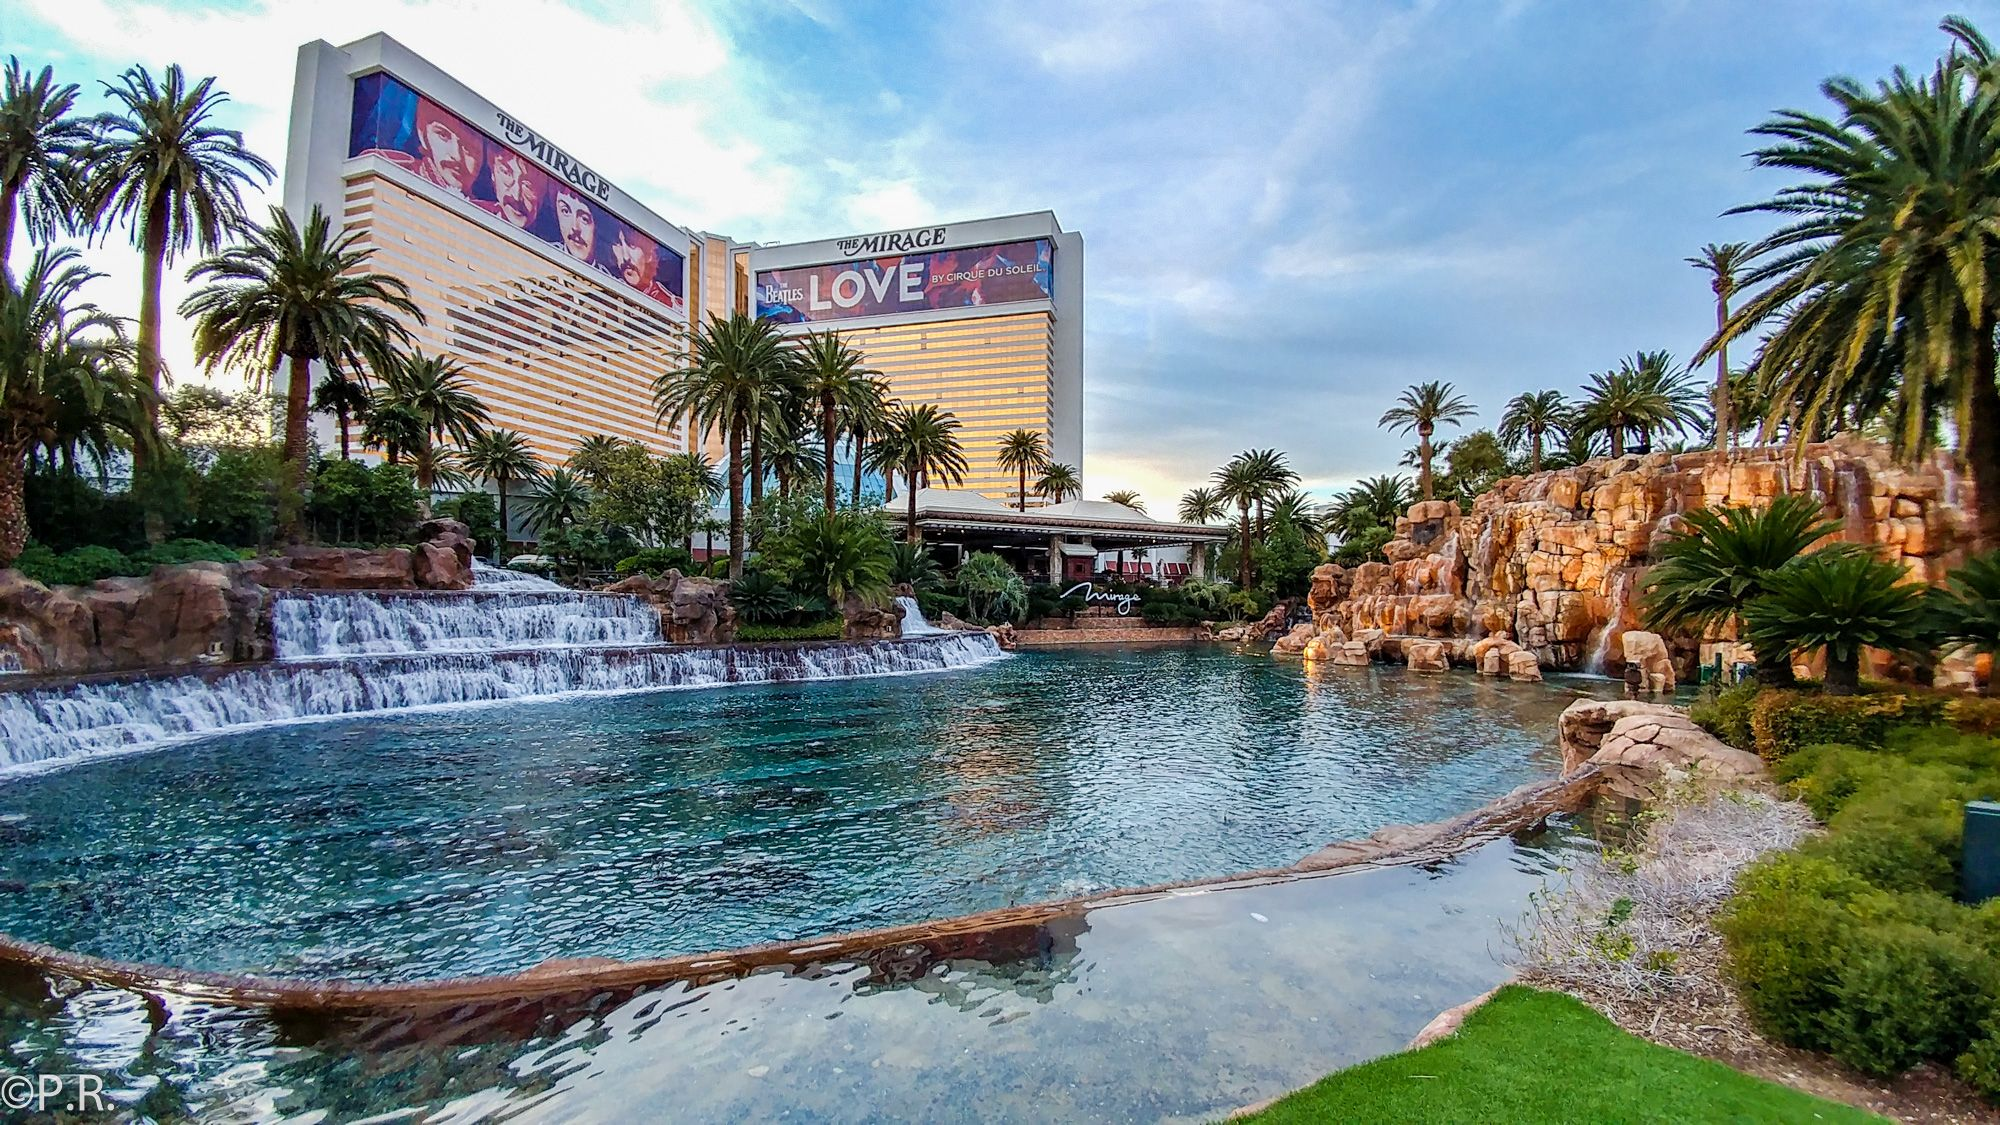 Hotel Review: The Mirage – Hotel and Casino